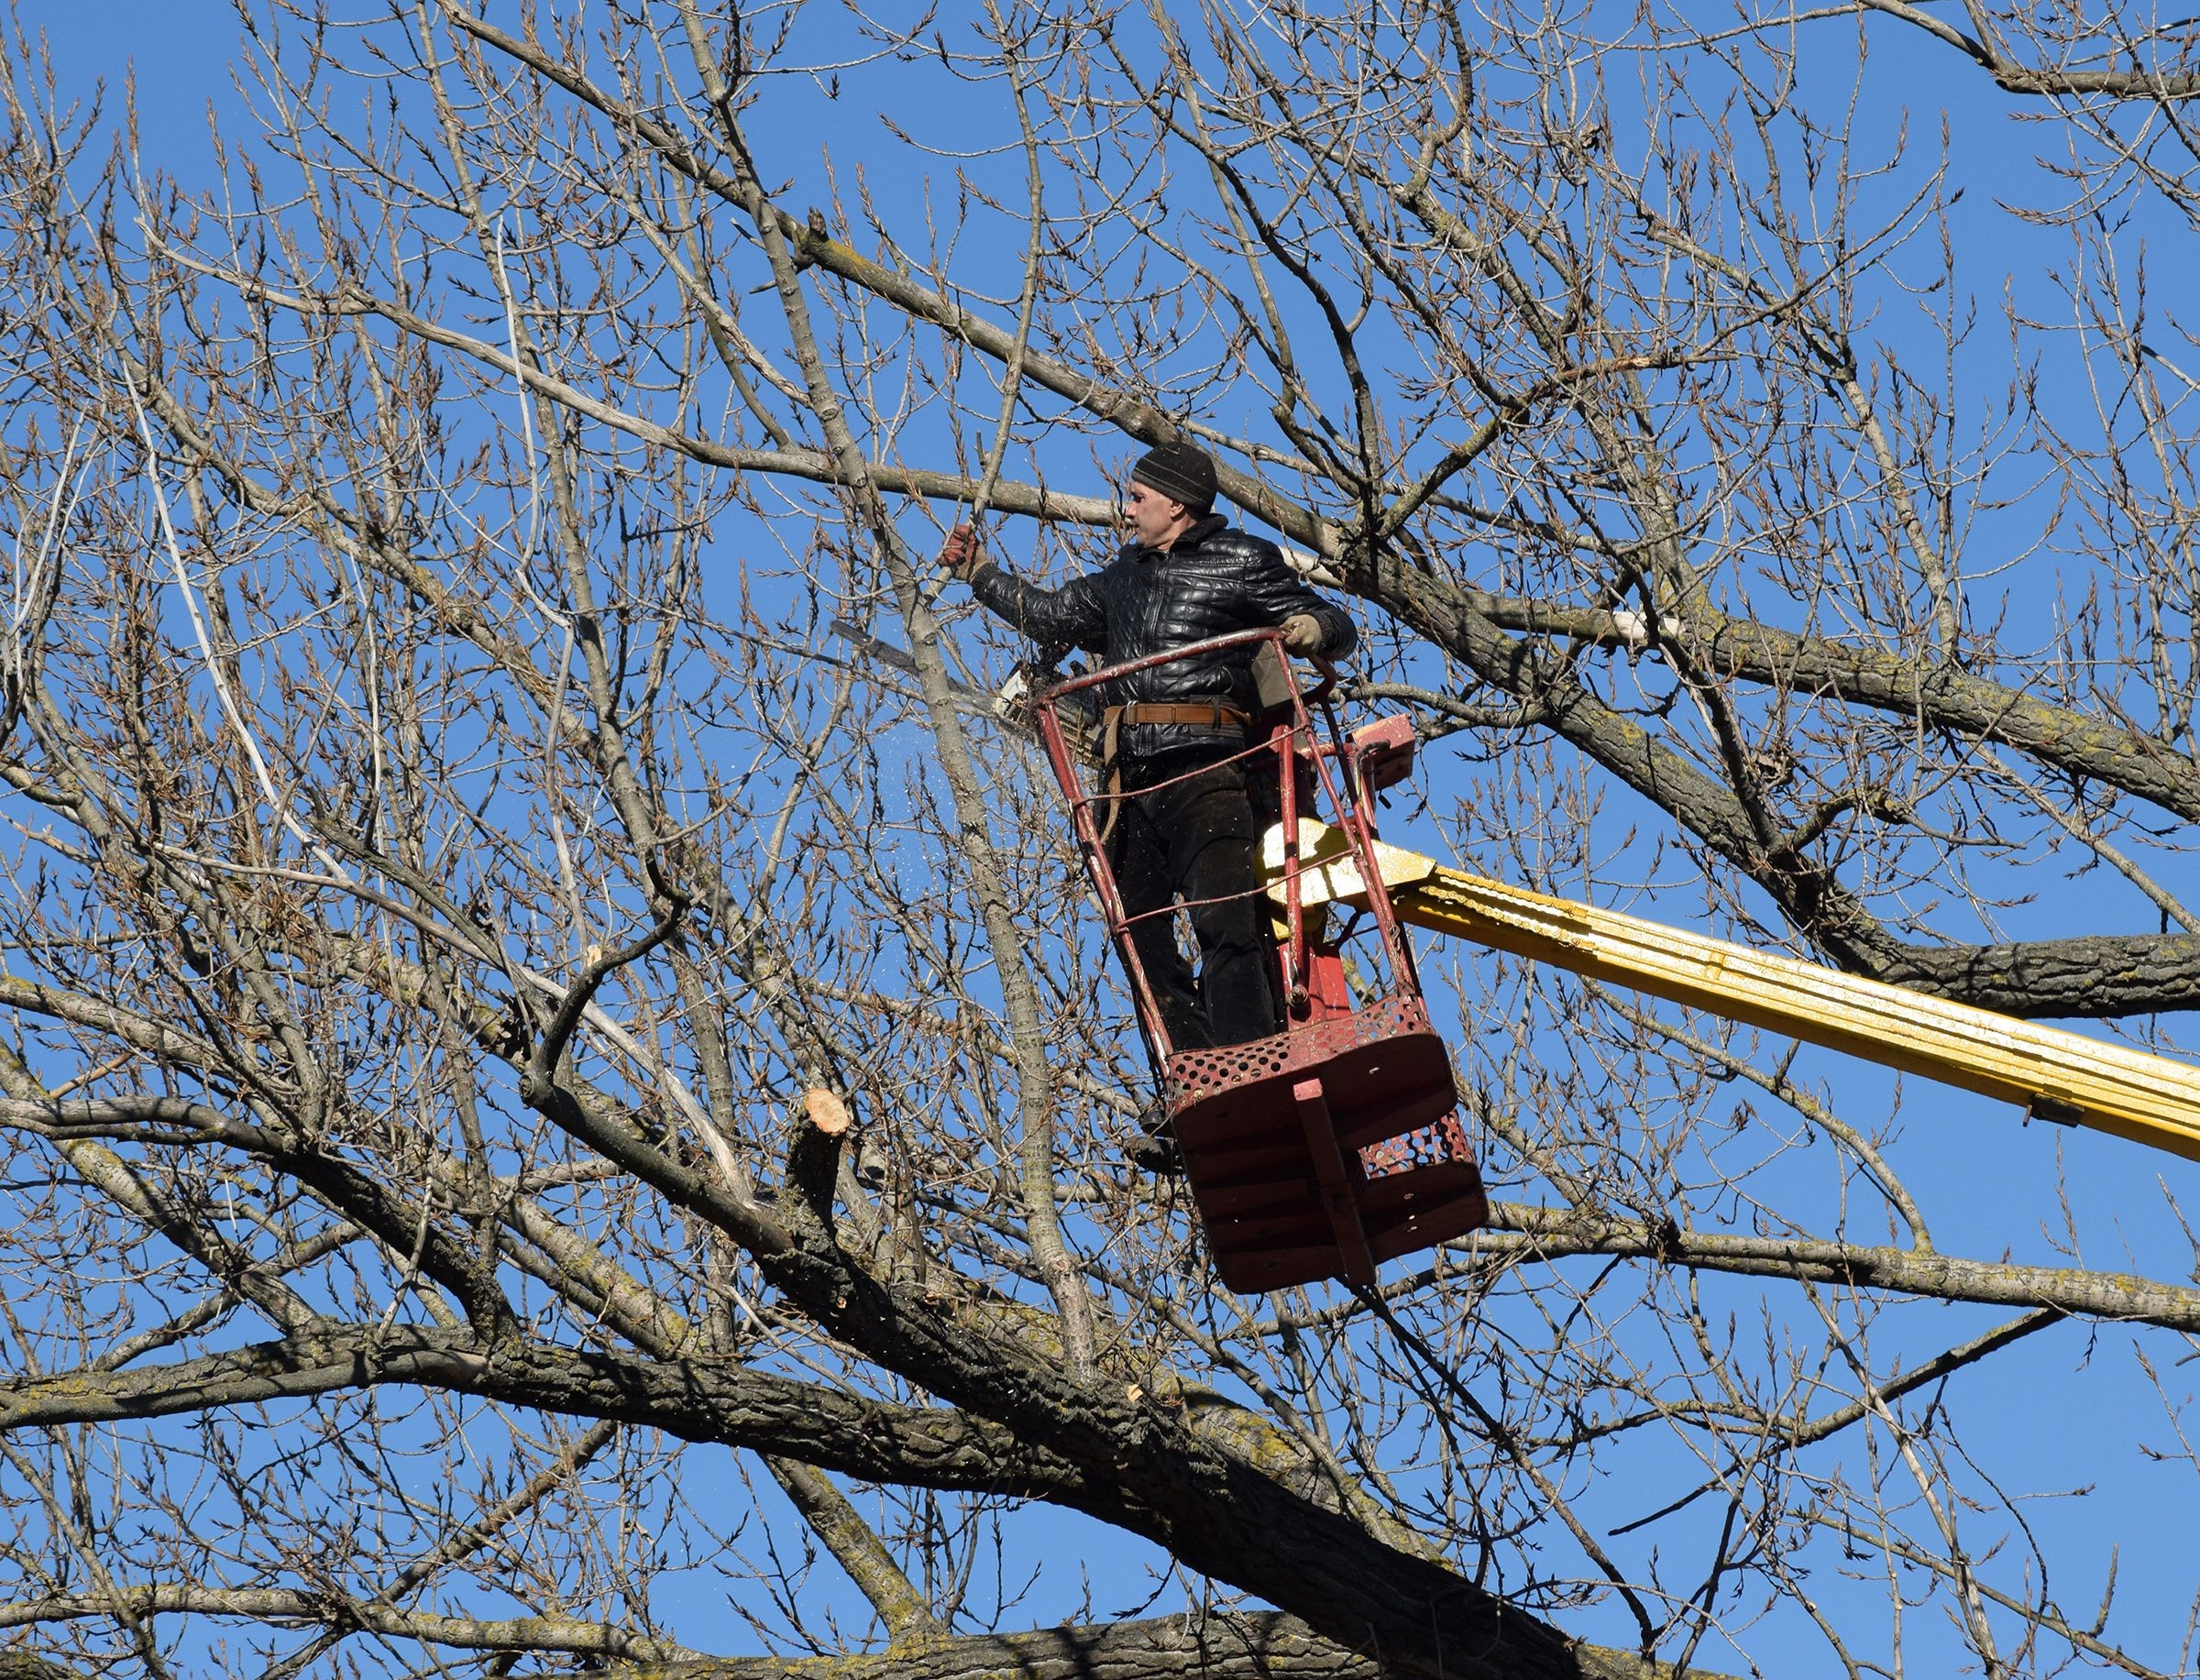 Professional tree service removing dead branches off of several trees